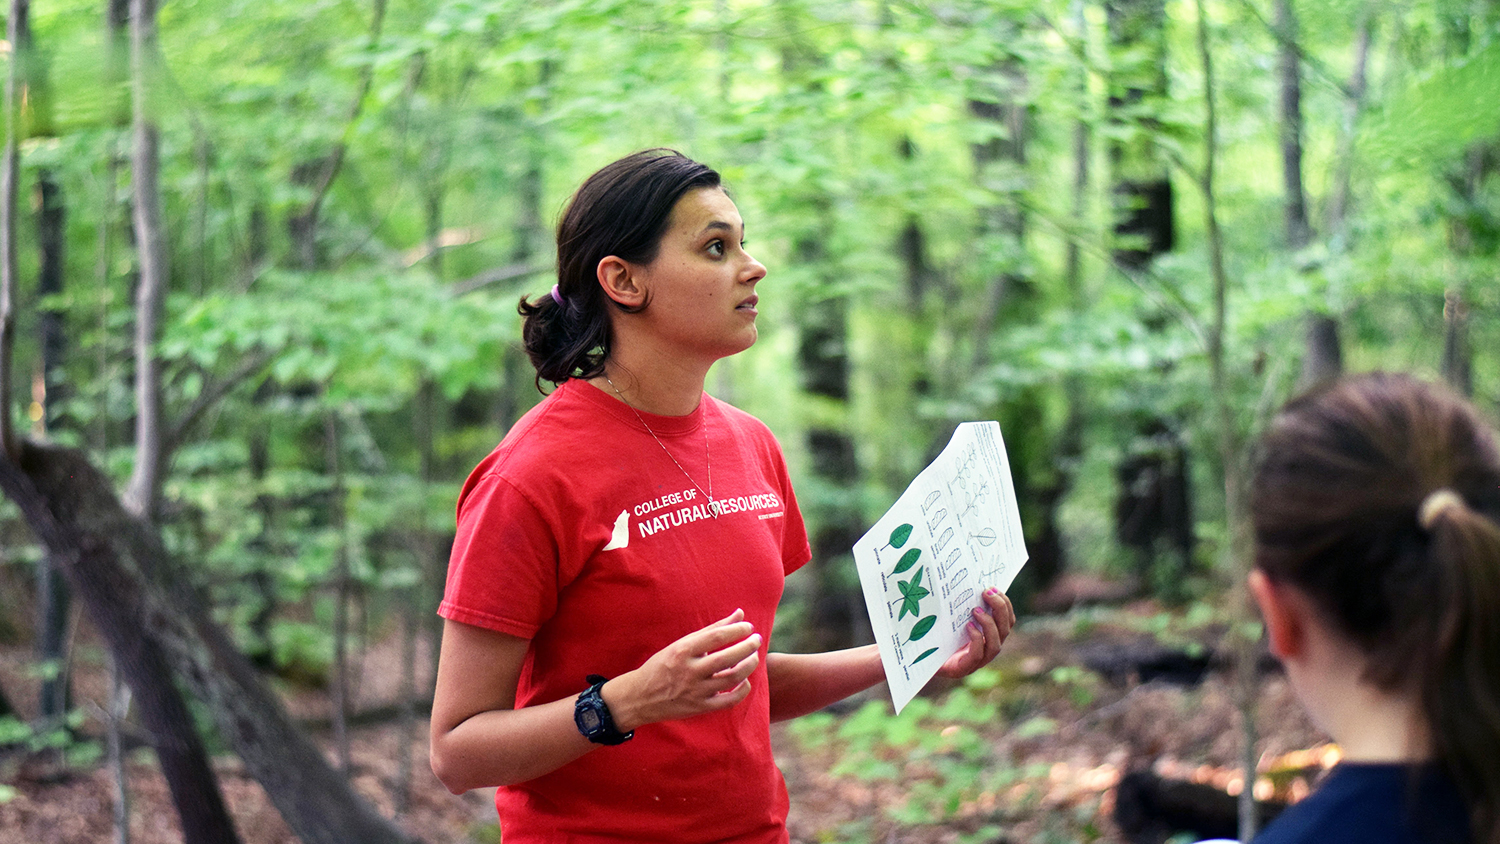 Sylvia Weir at Schenck Forest for Girl Scout Merit Badge Day